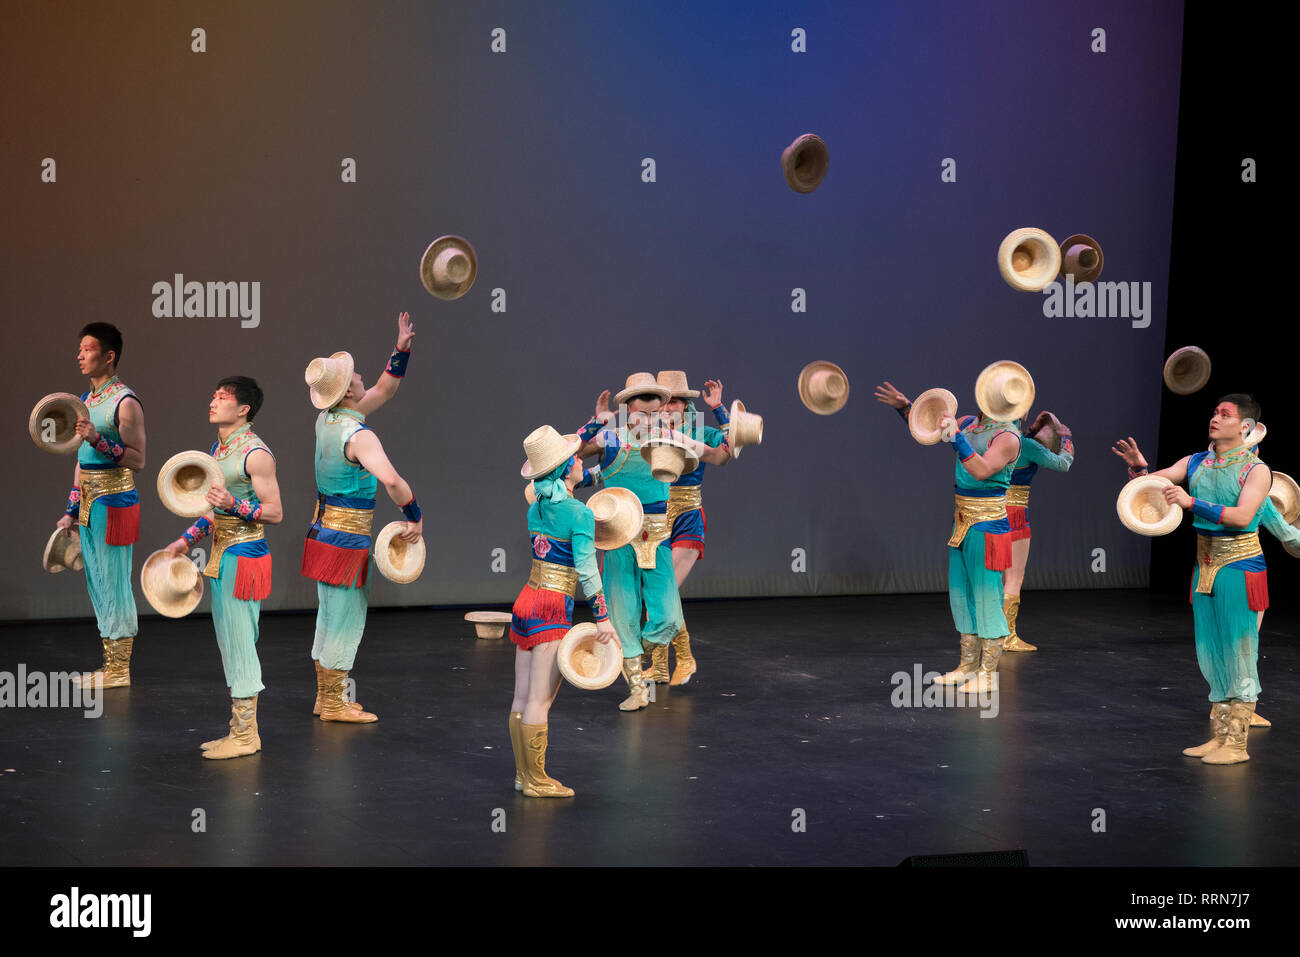 Acrobats from the New Shanghai Circus performed astonishing feats of precision, strength and balance — in this case with hats that they changed in sec - Stock Image